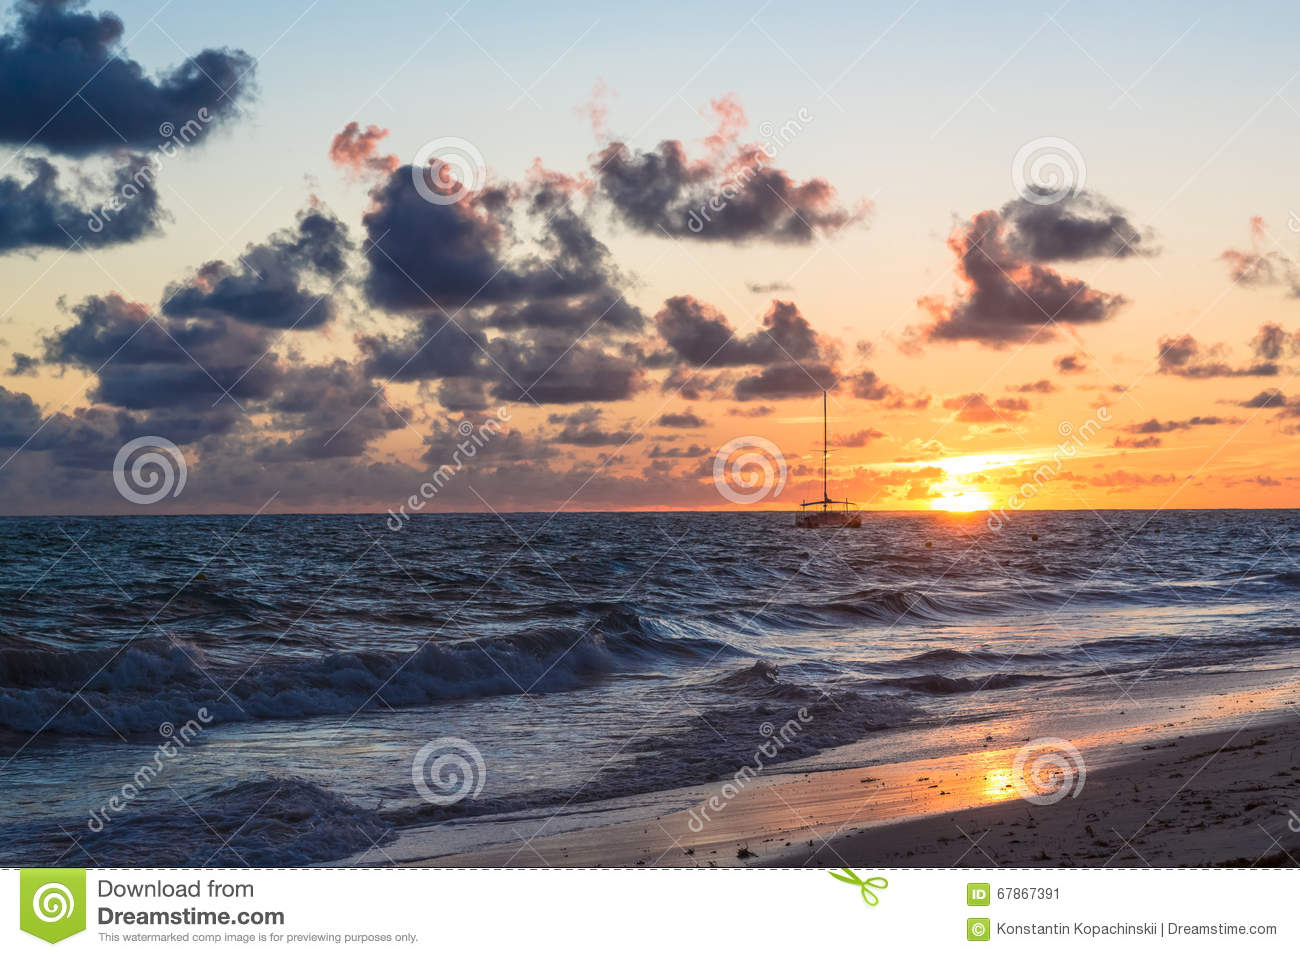 Fluffy dark clouds floating over turbulent ocean waters on sandy beach shore